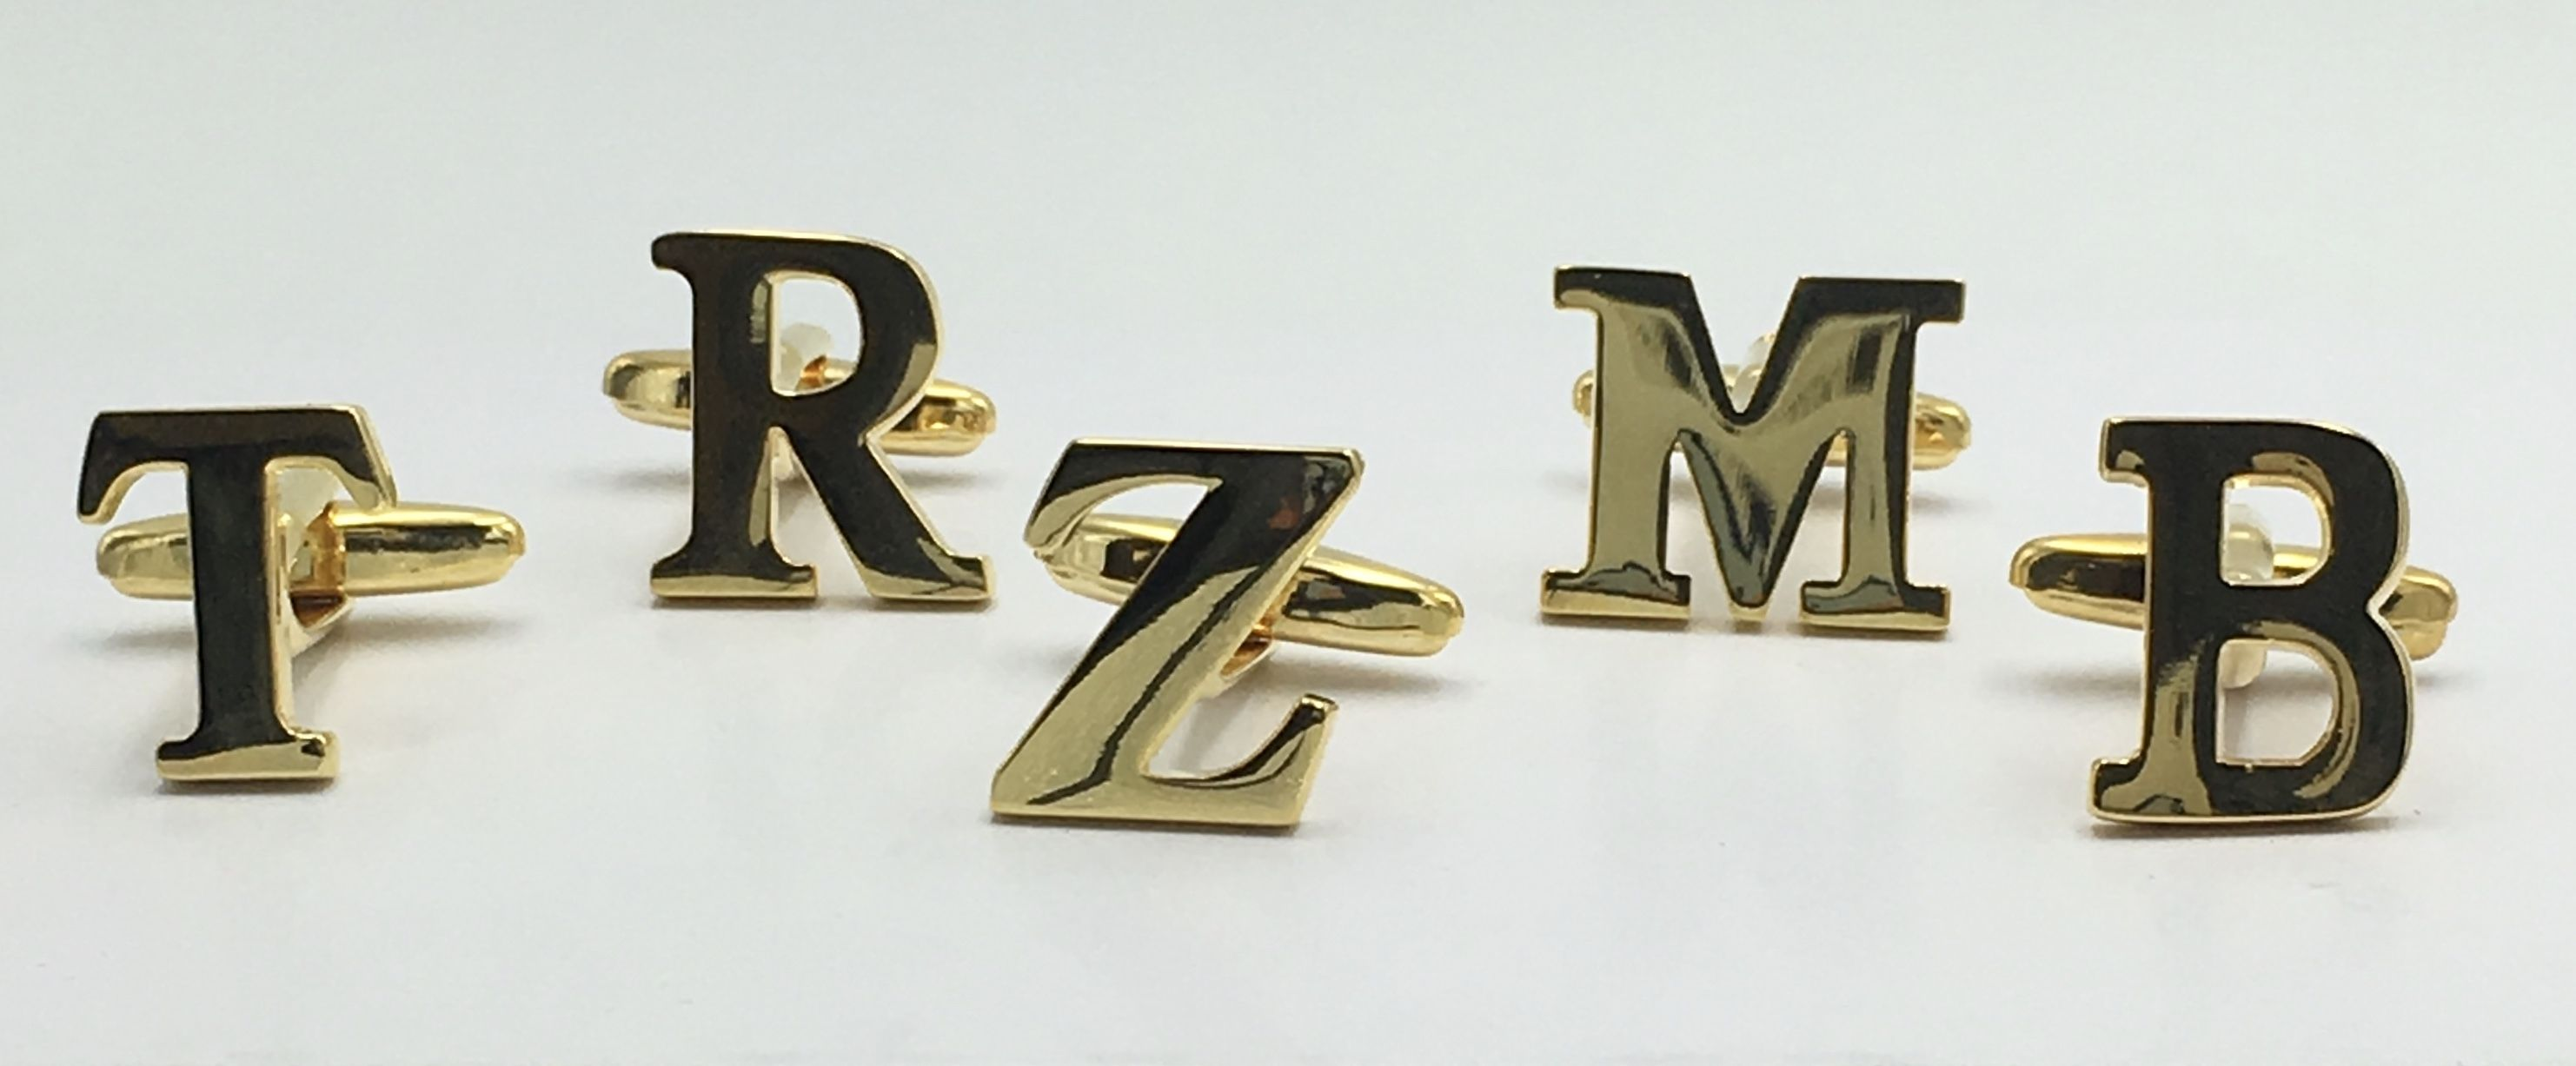 2 Pc. Gold Personalized Initial Cufflinks